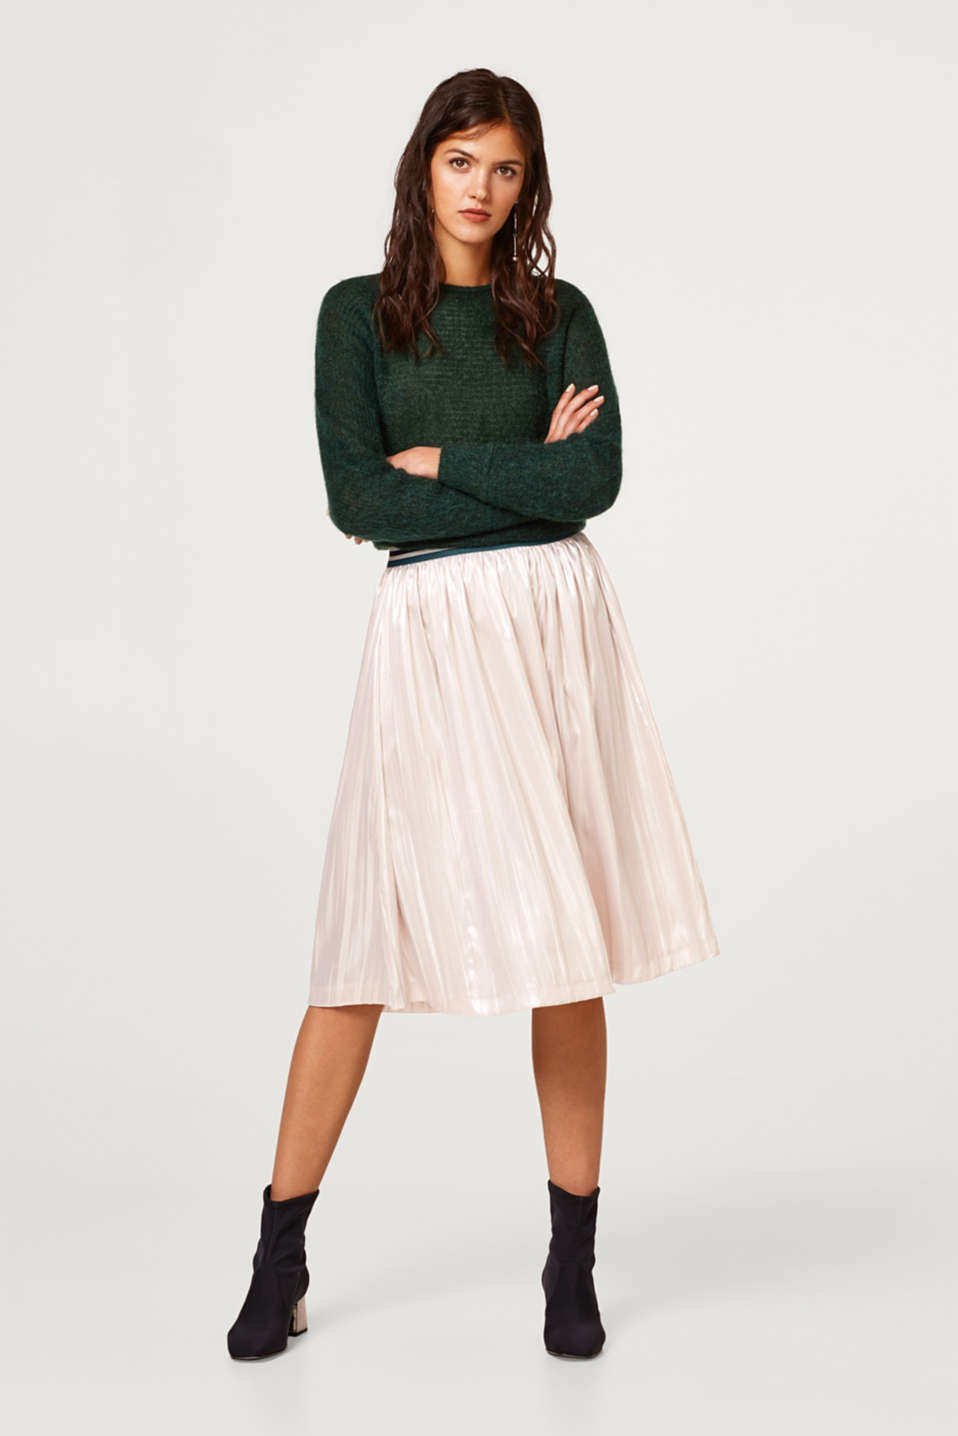 Esprit - Pleated skirt with a metallic coating and elasticated waistband